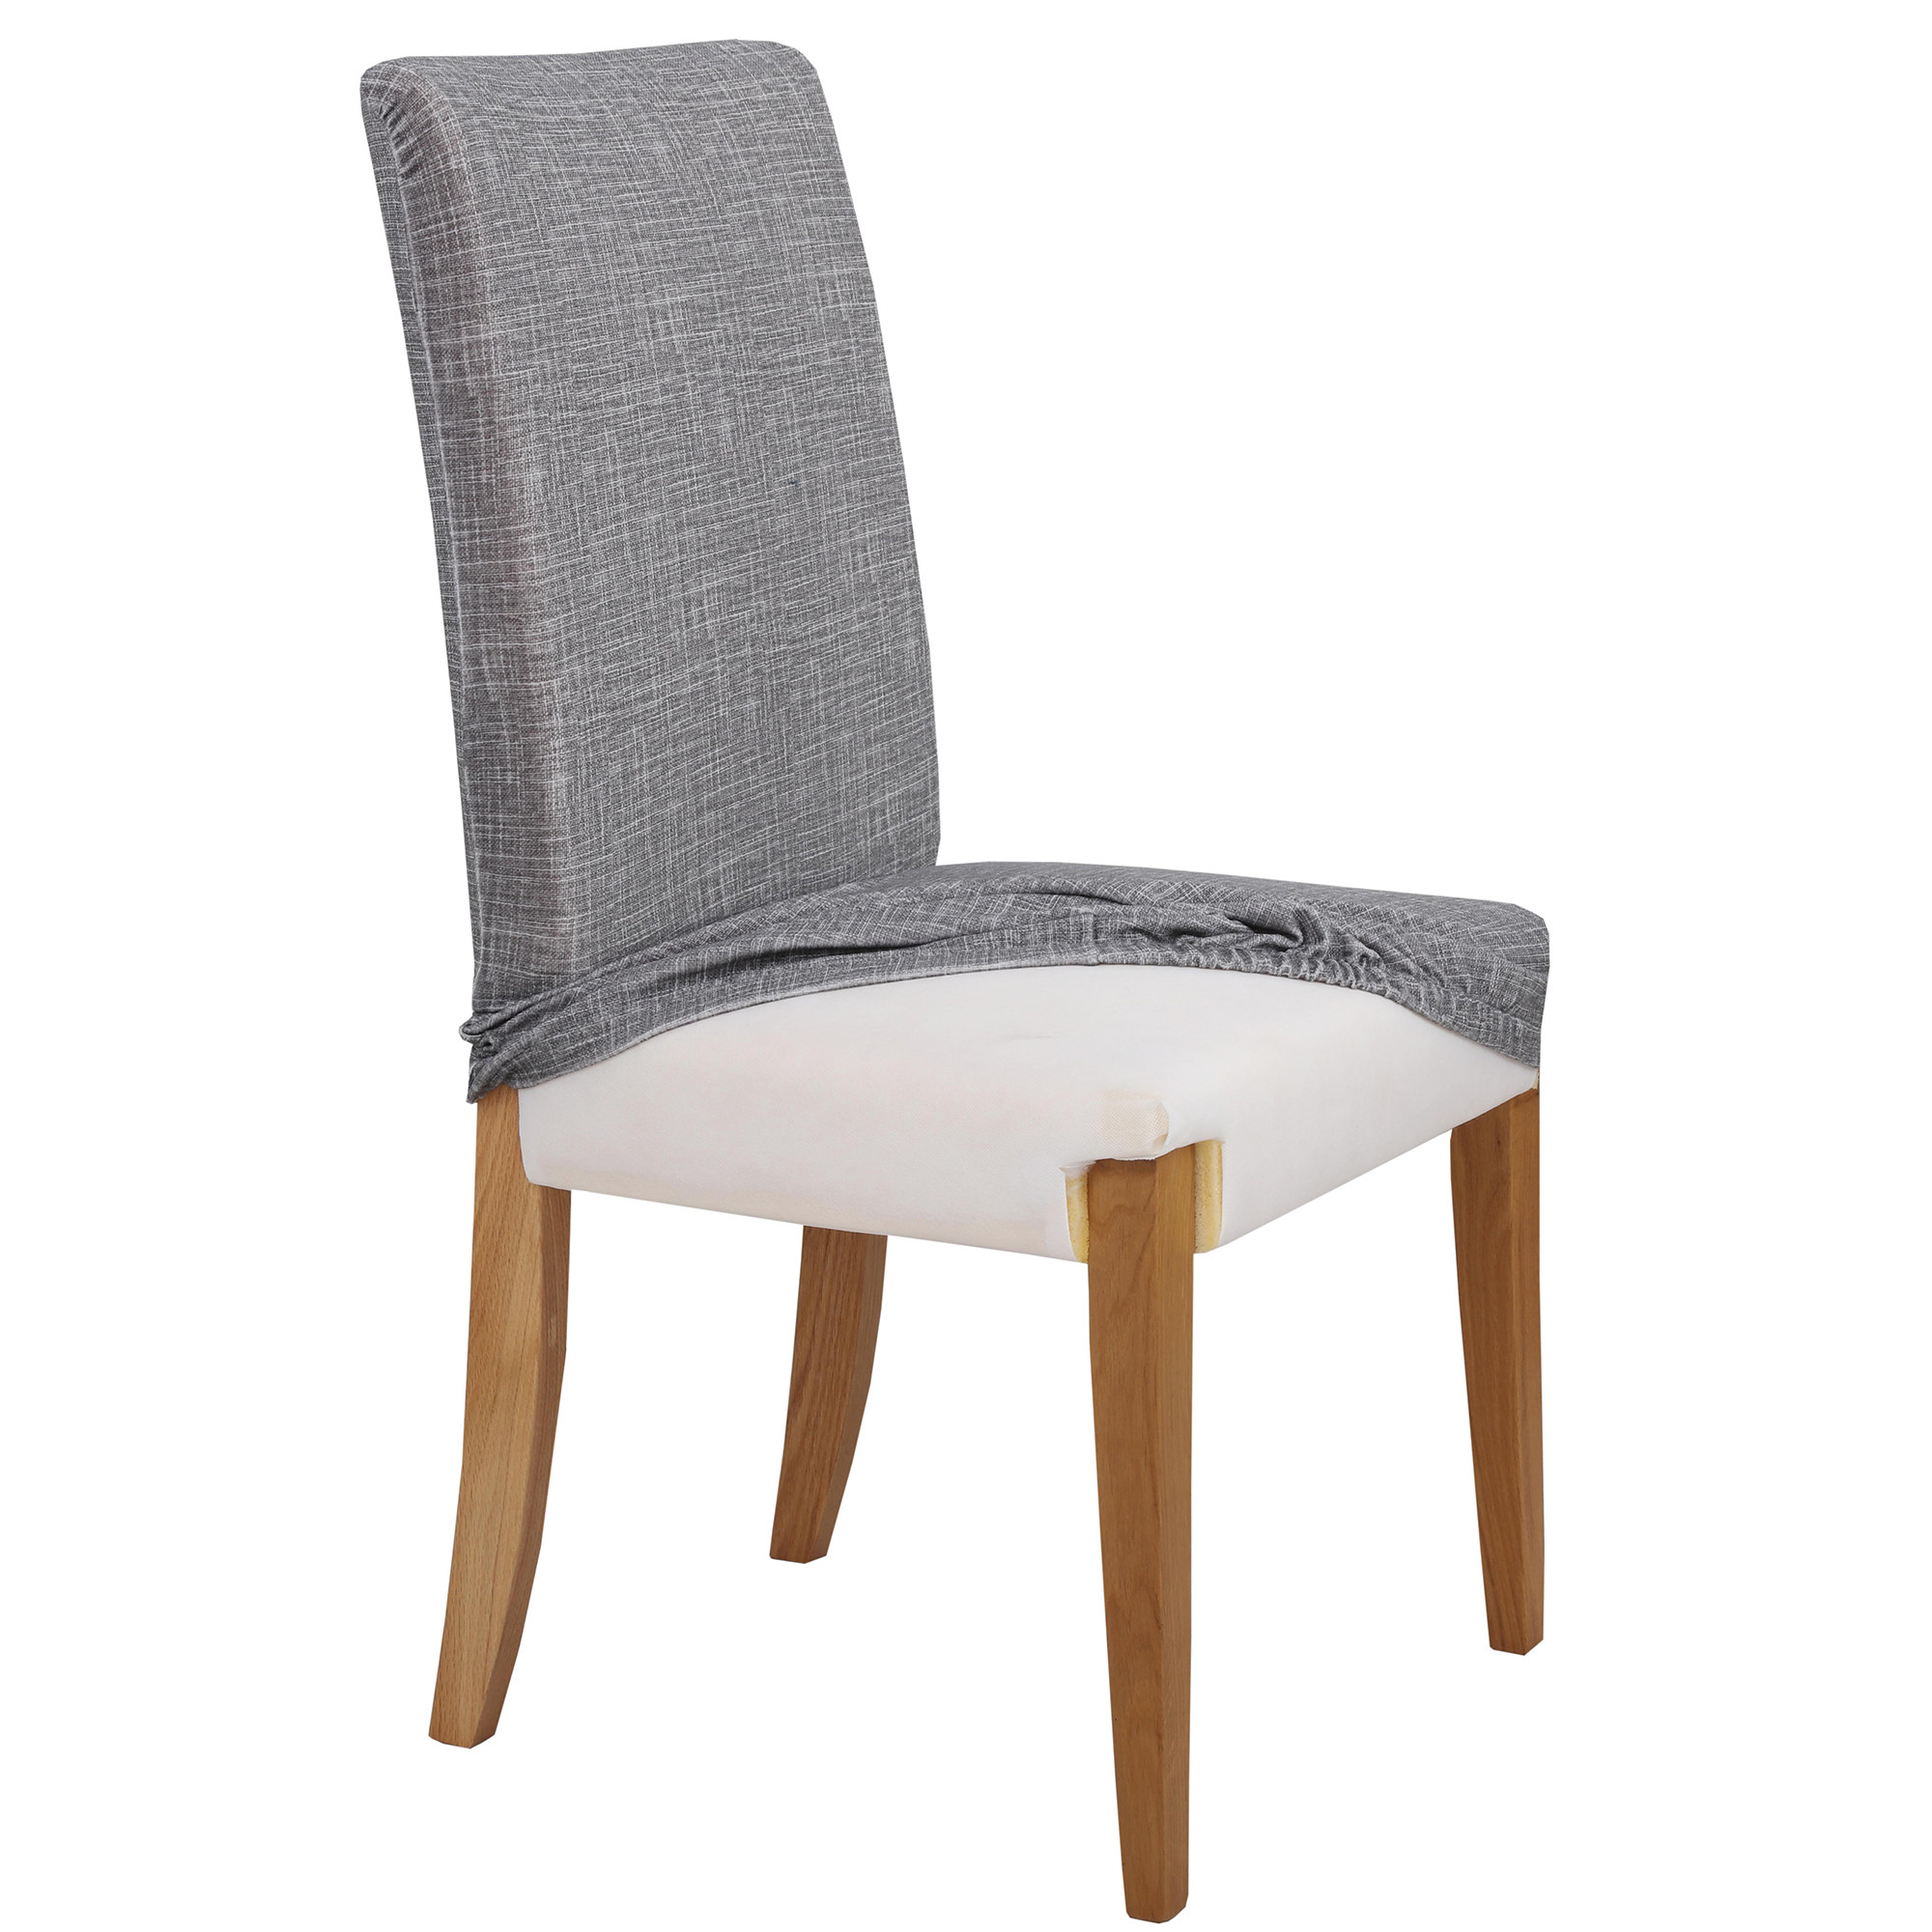 SKU HOMI1048 Grey Faux Linen Stretch Dining Room Chair Cover Is Also Sometimes Listed Under The Following Manufacturer Numbers 58453 58453x2 58453x4